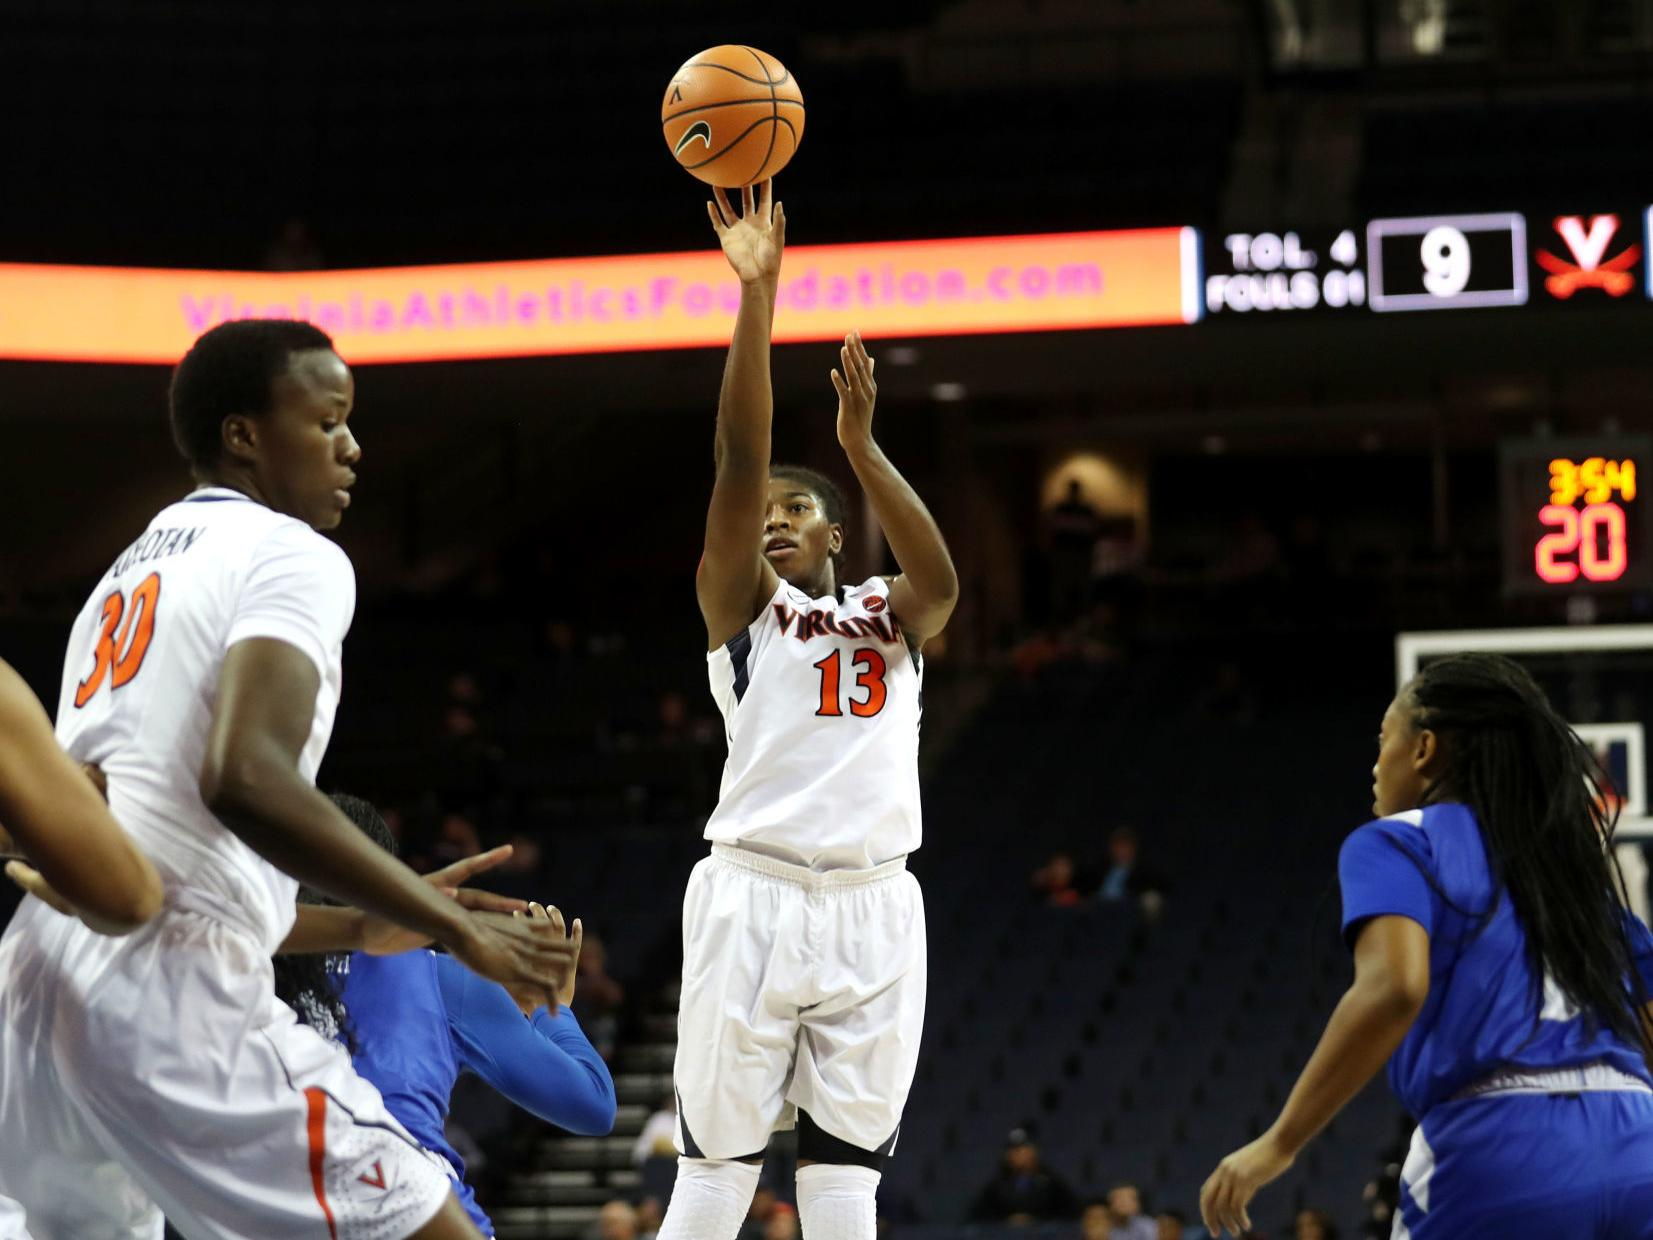 Uva Women S Basketball It S All Or Nothing On Cavs Roster When It Comes To Experience Uva Roanoke Com